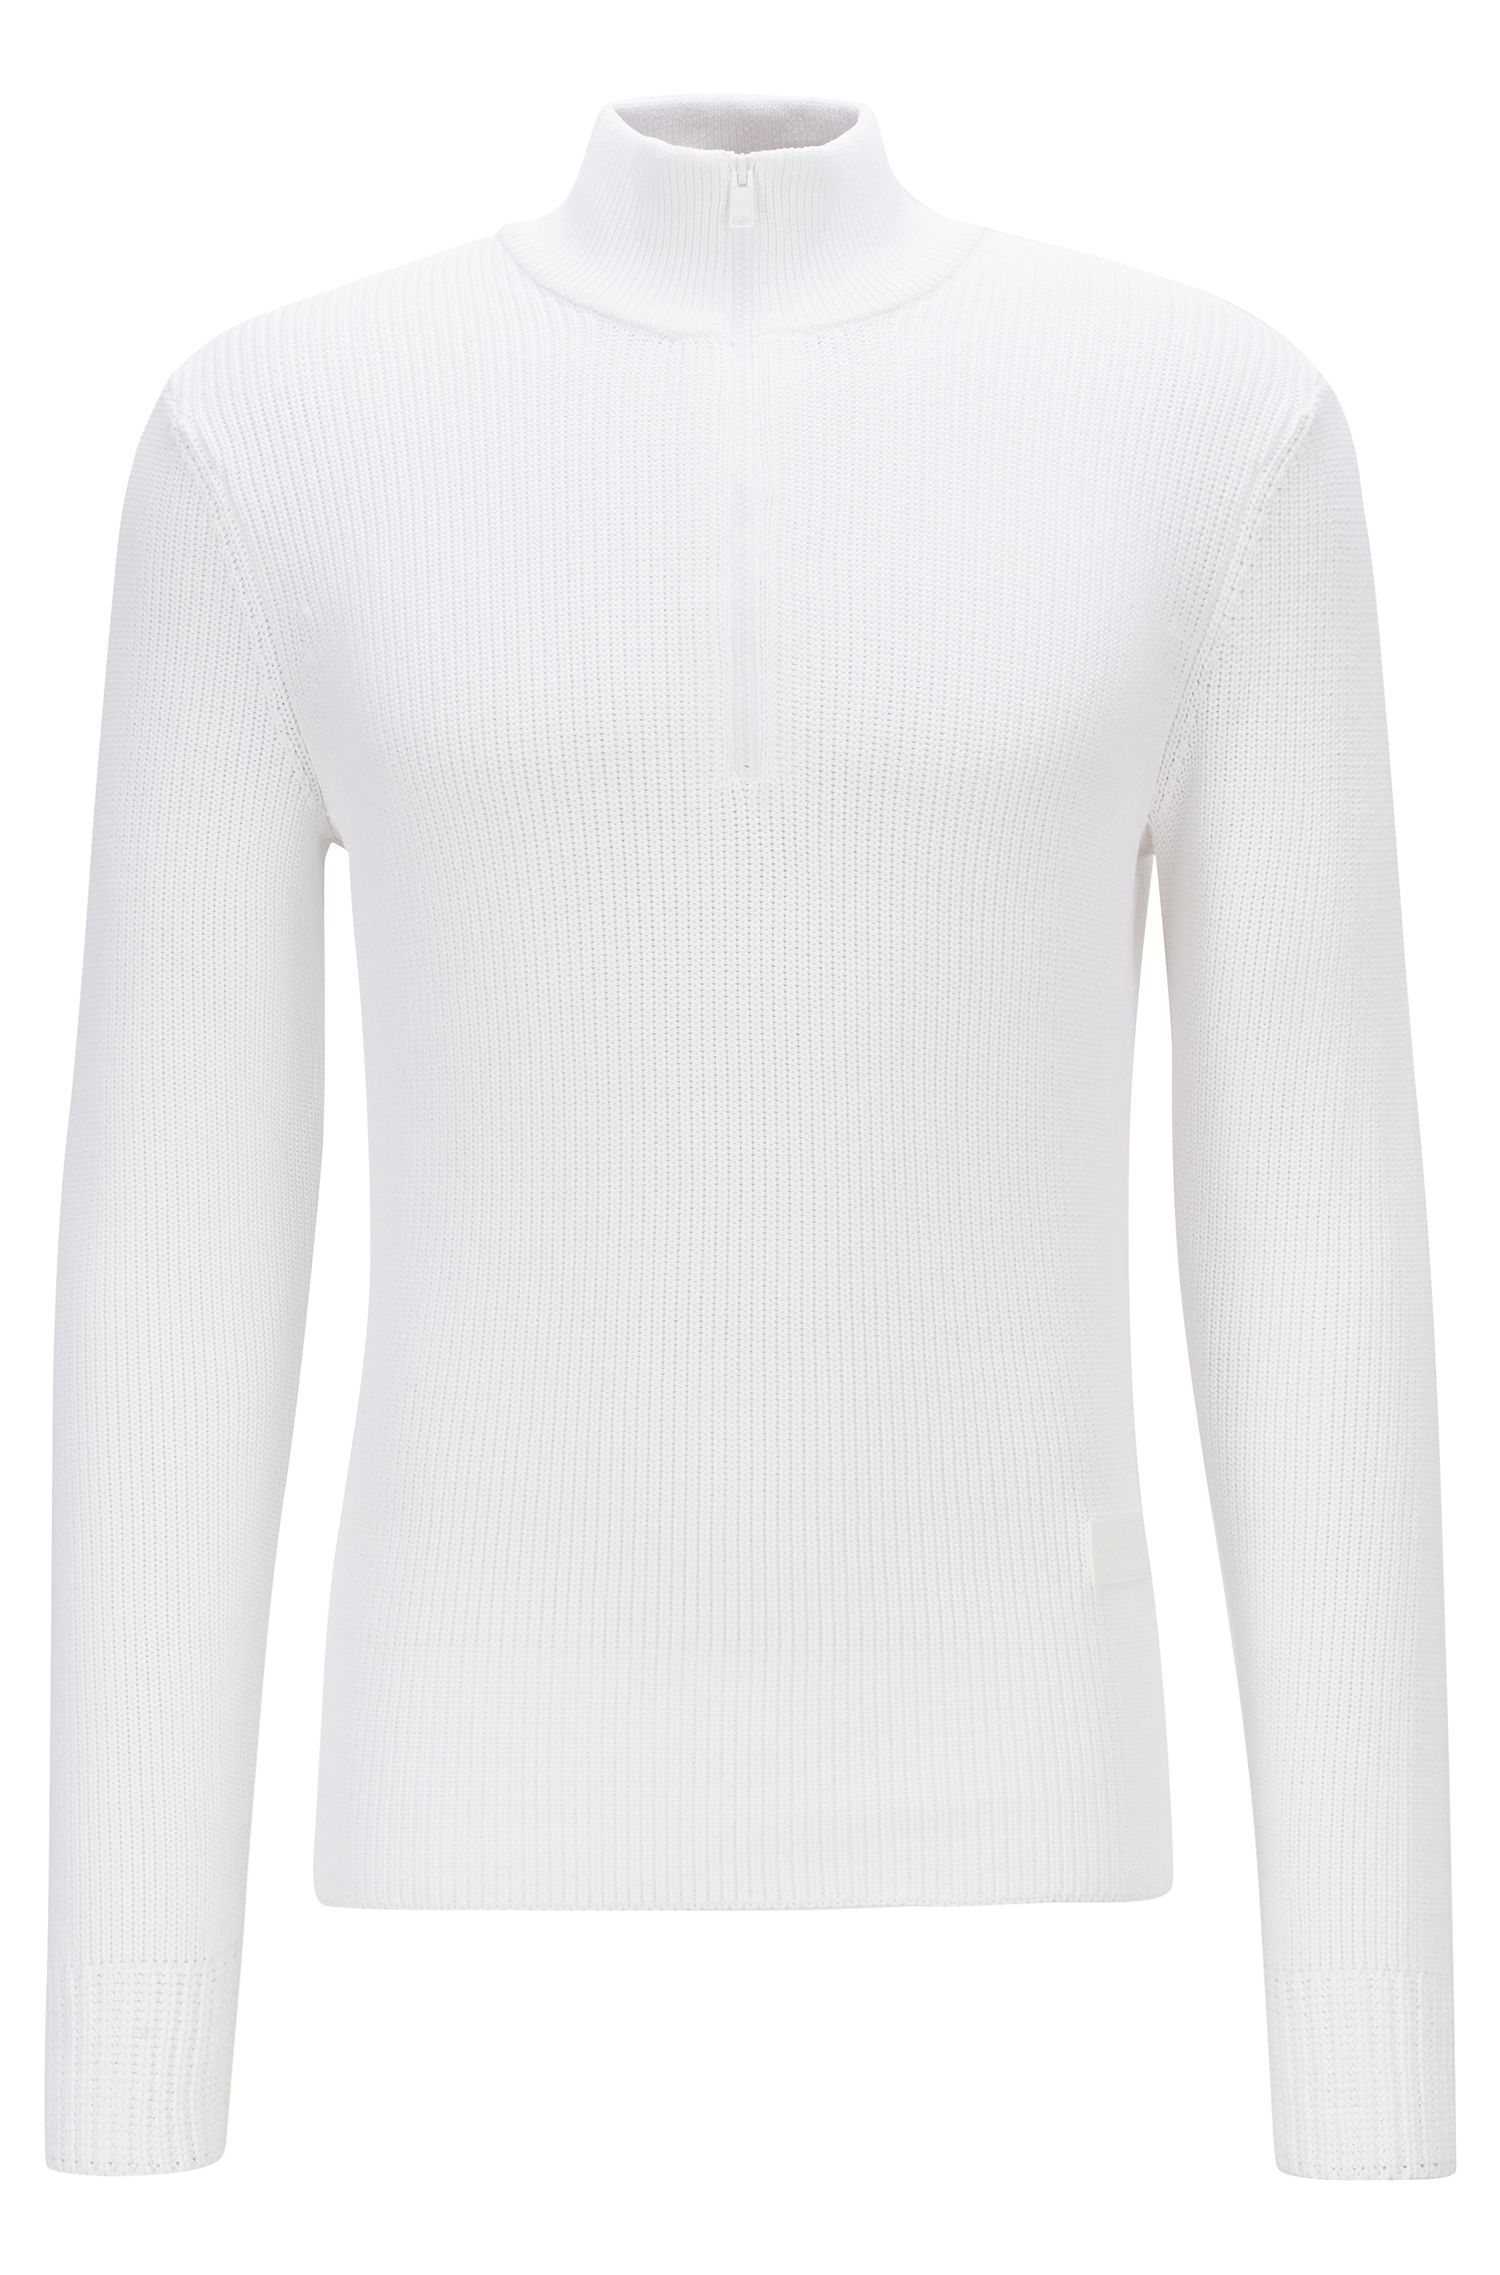 Zipper-neck sweater in a mix of ribbed knits, White